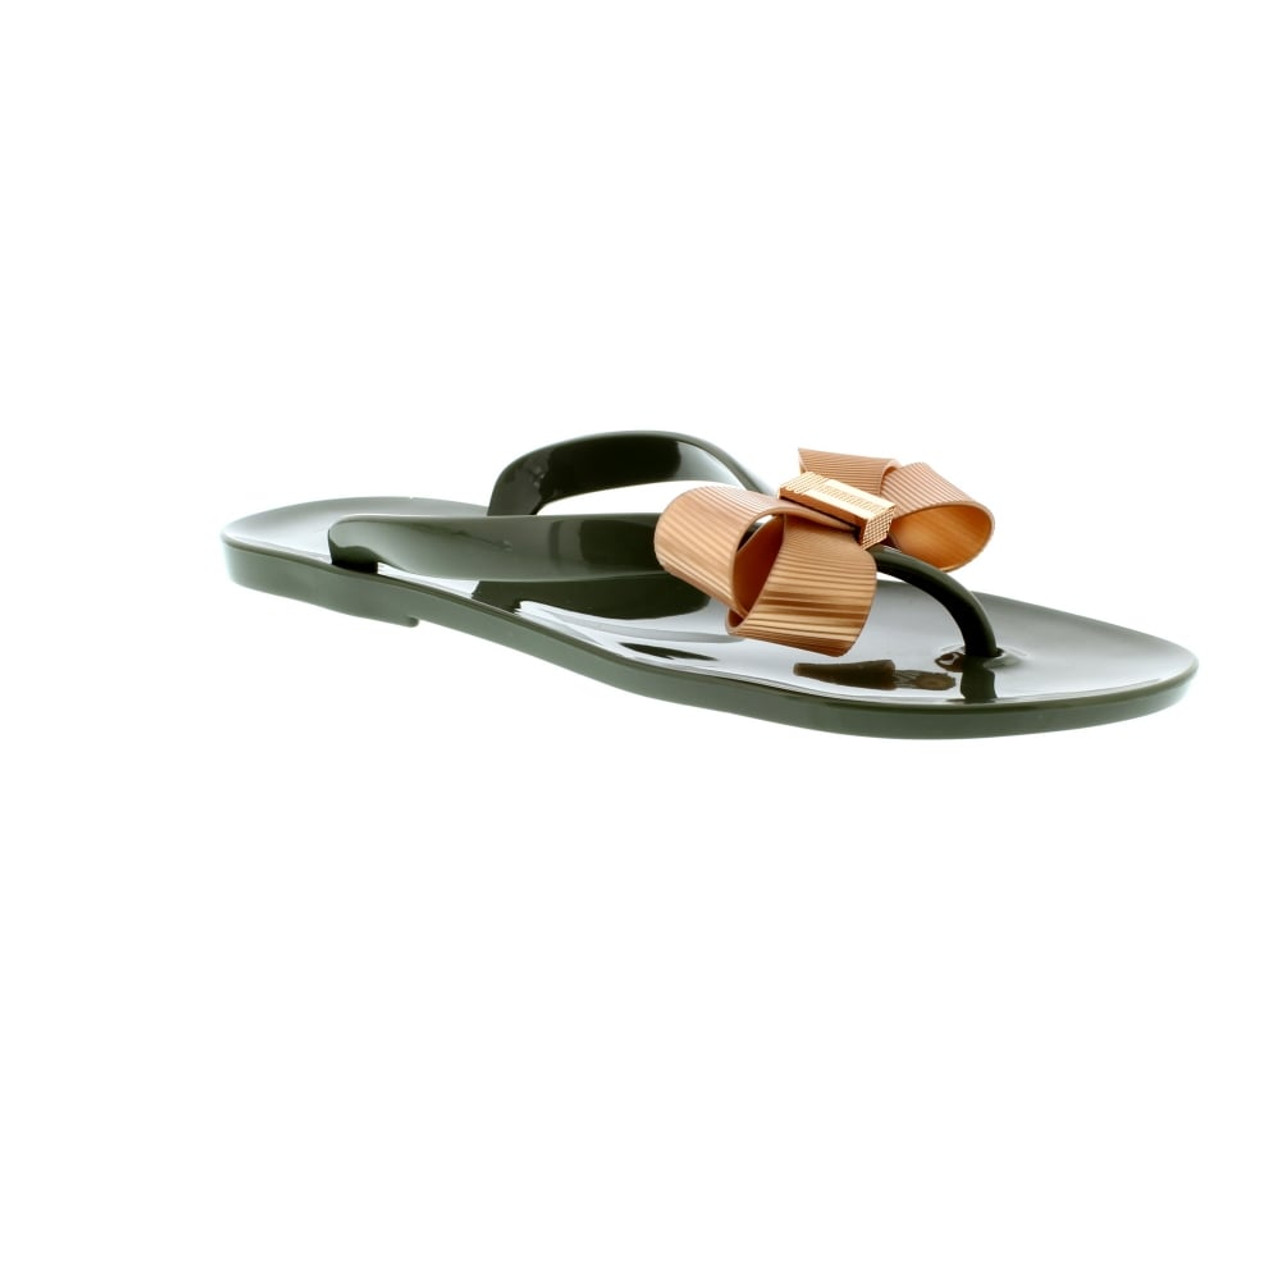 292cec1de Ted Baker SUSZIE Bow Detail Jelly Flip Flop - STYLE by Turn Her Style